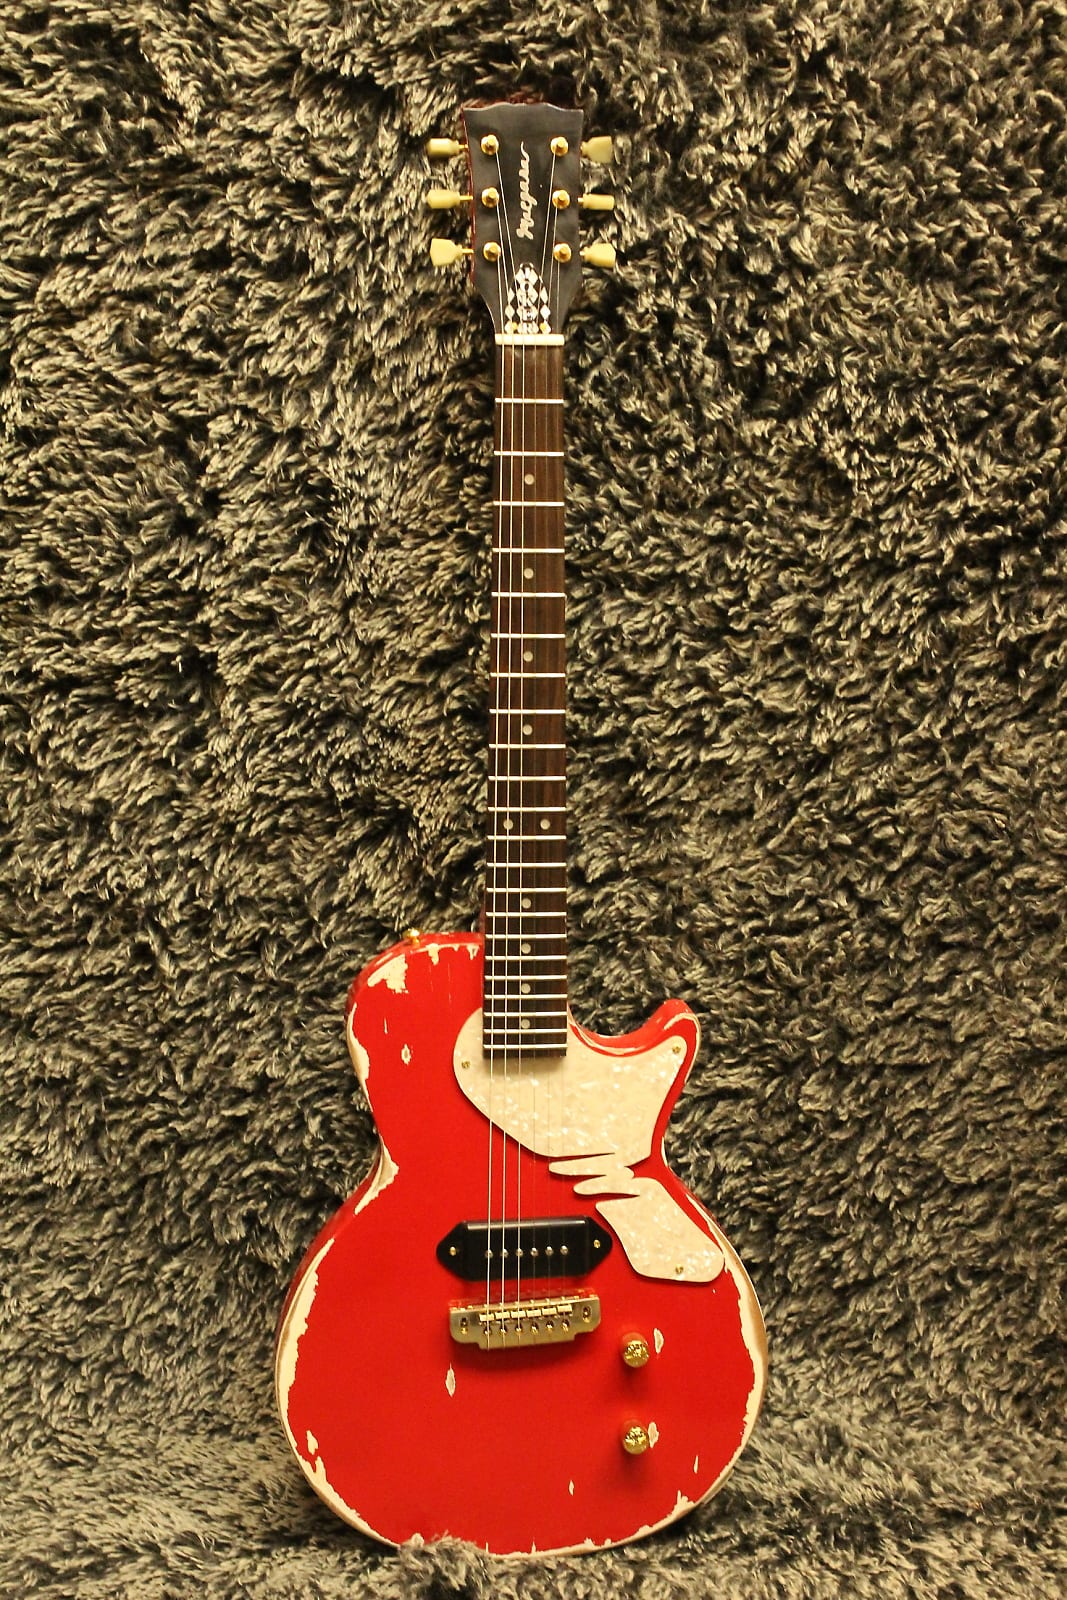 USA Margasa Joker Guitar 2015 Vintage Style Heavy Relic, Bel Air Red + Gibson® P90